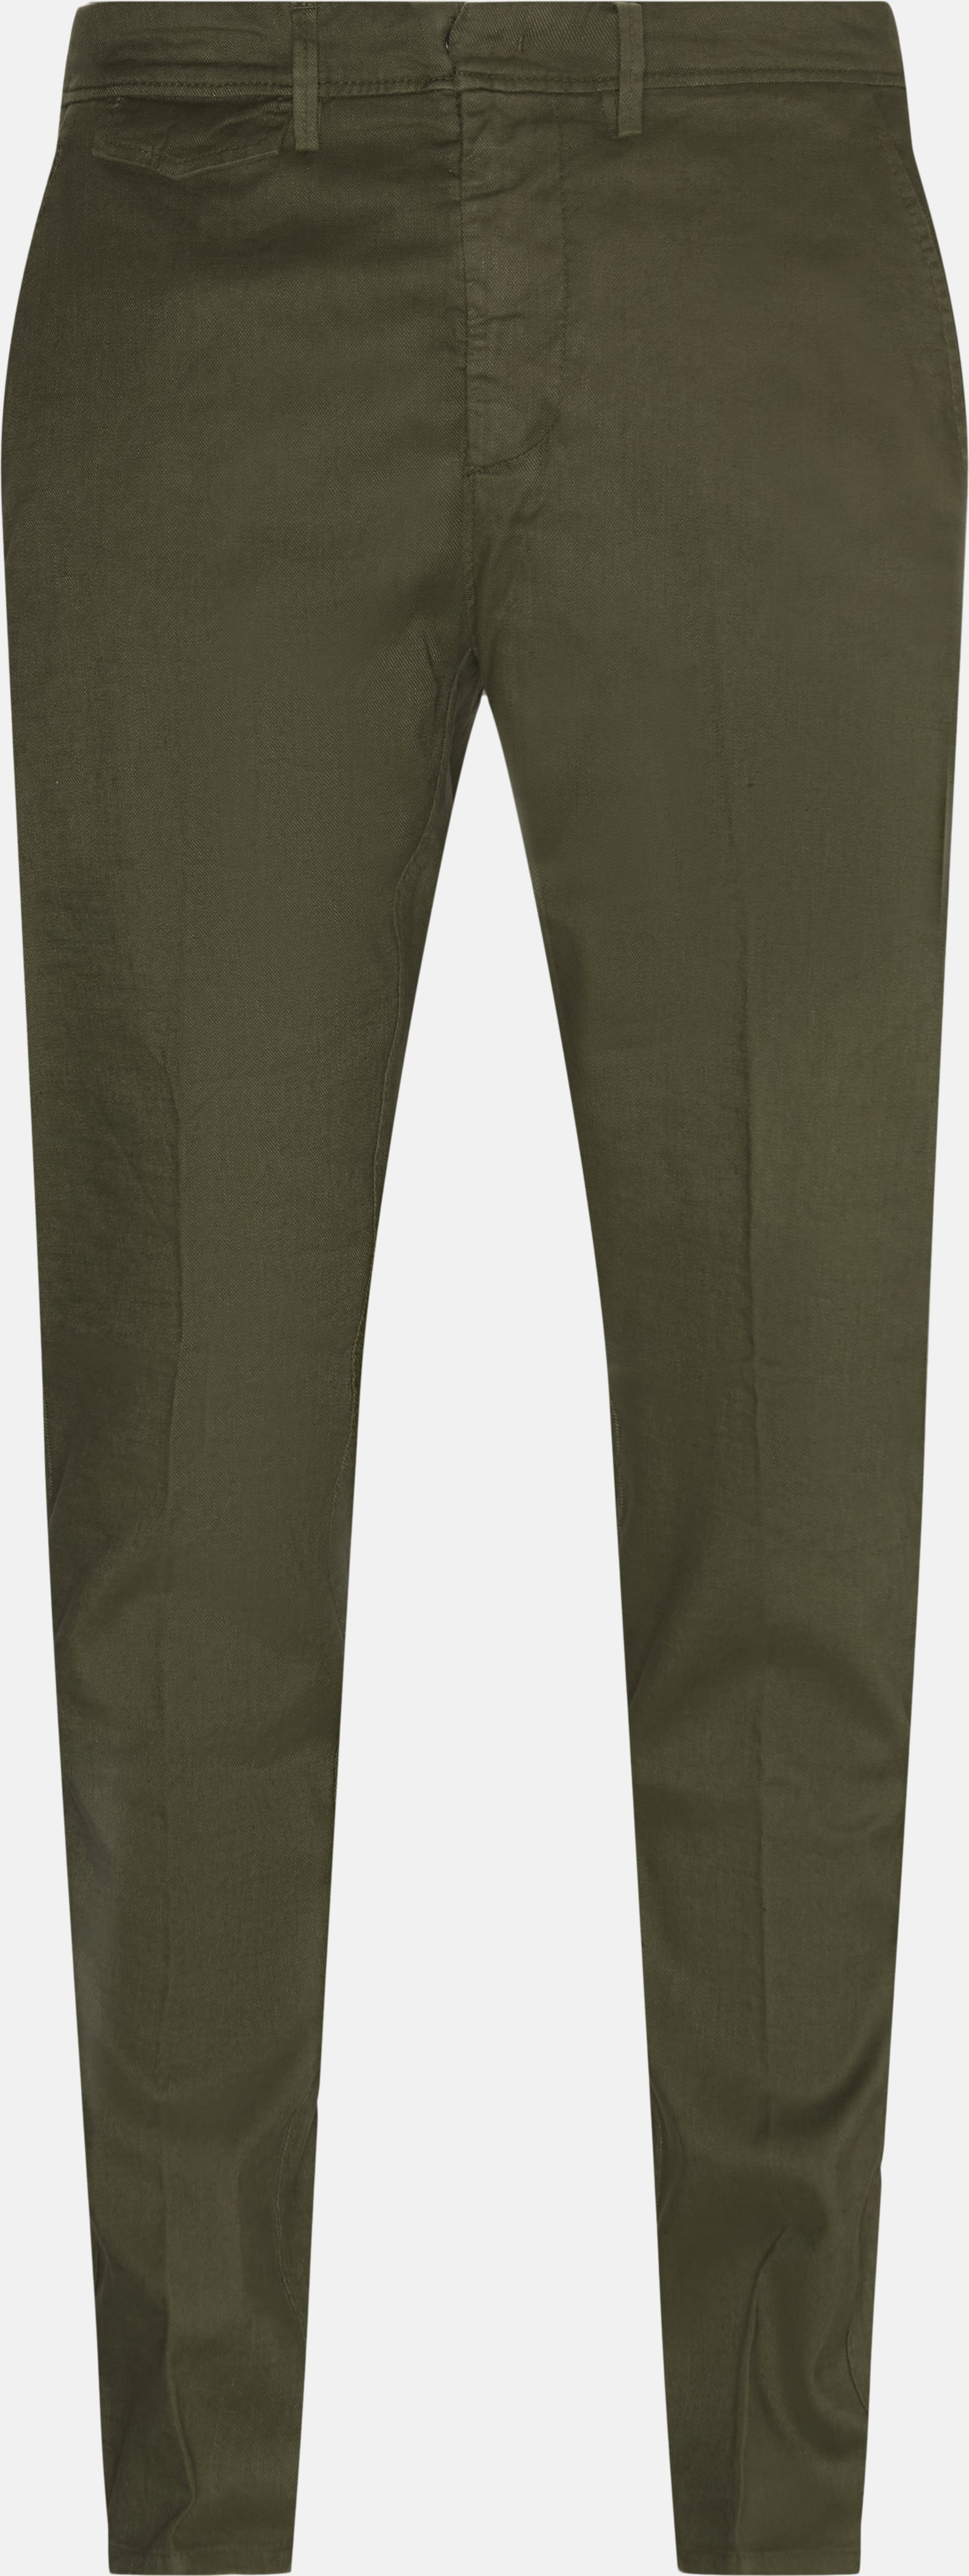 Trousers - Regular fit - Army